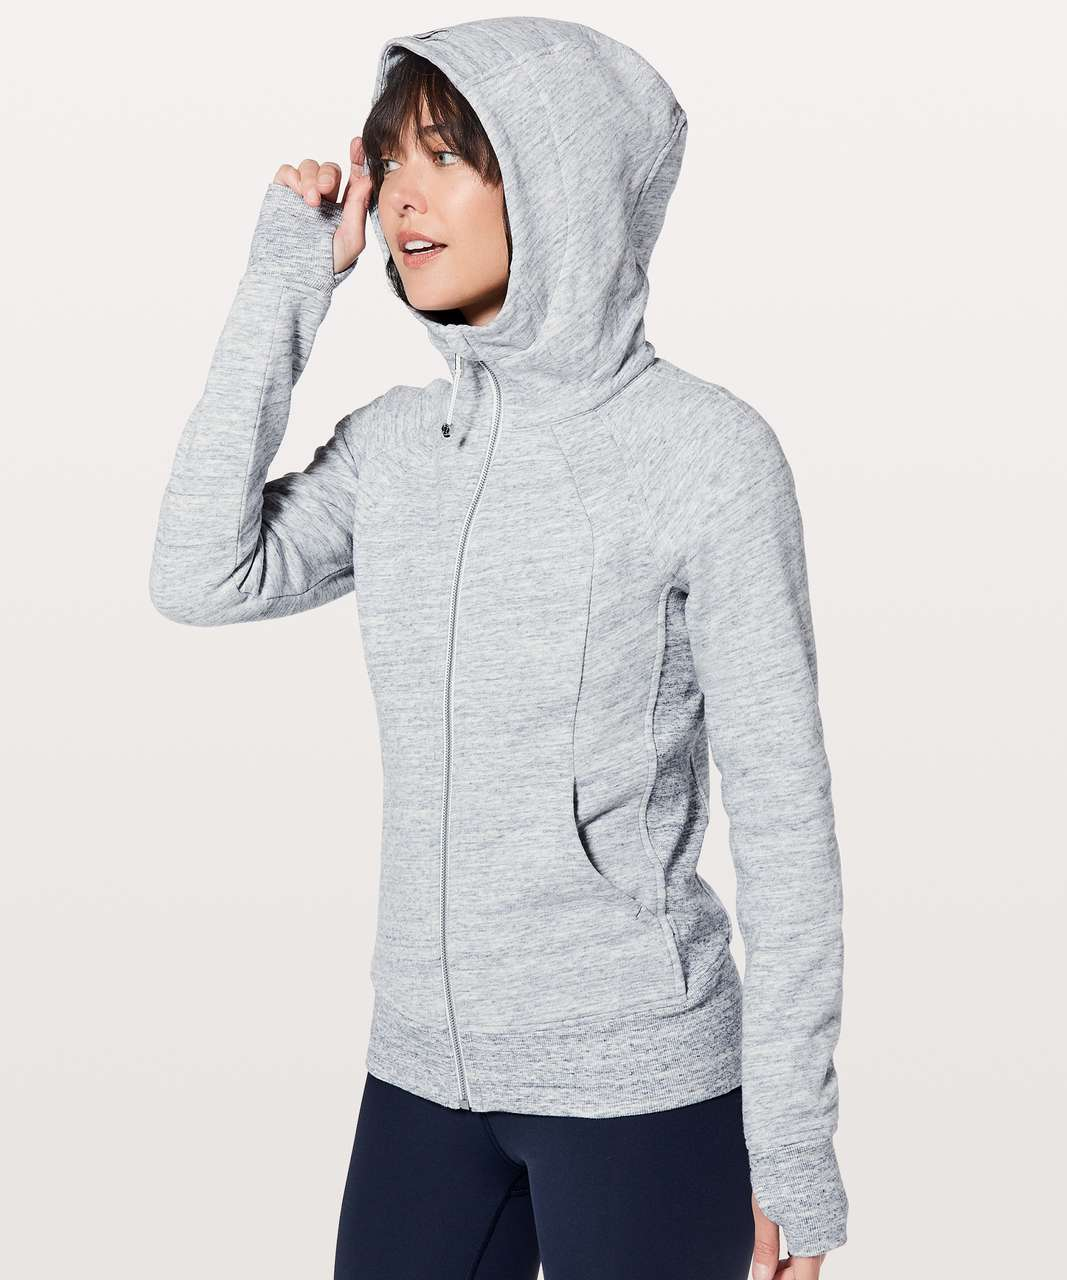 Lululemon Scuba Hoodie *Light Cotton Fleece - Heathered Space Dyed Nimbus / Nimbus